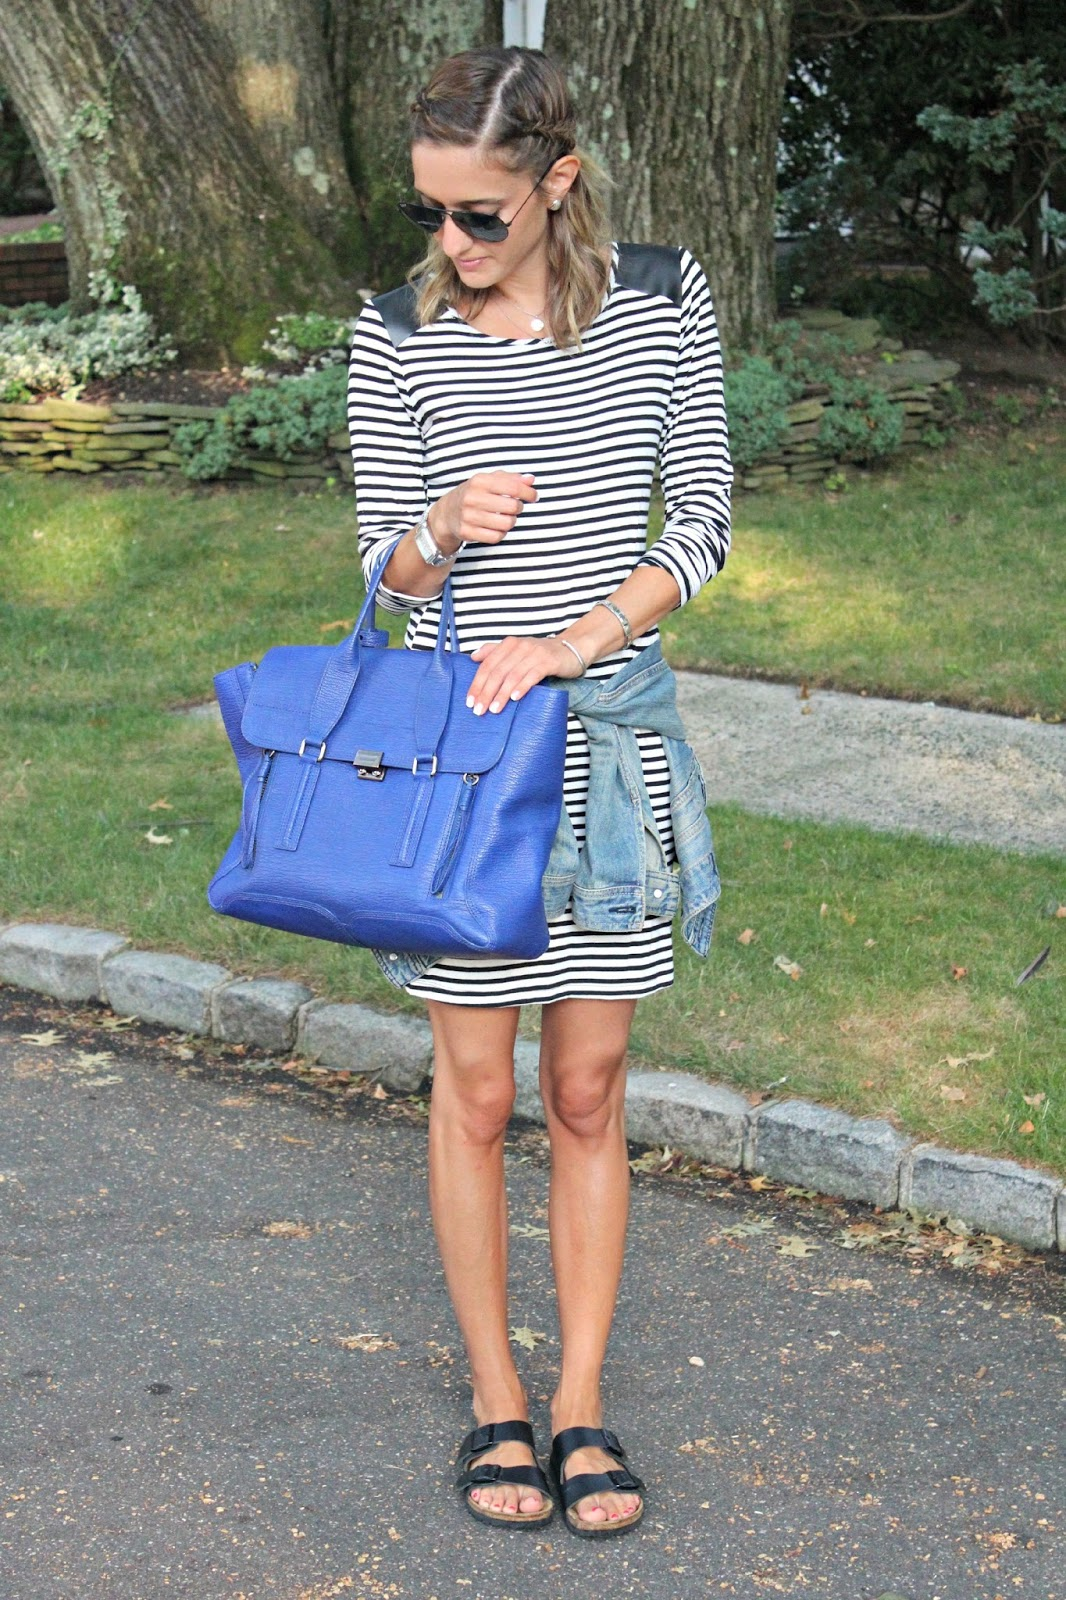 wearing birkenstocks with stripes